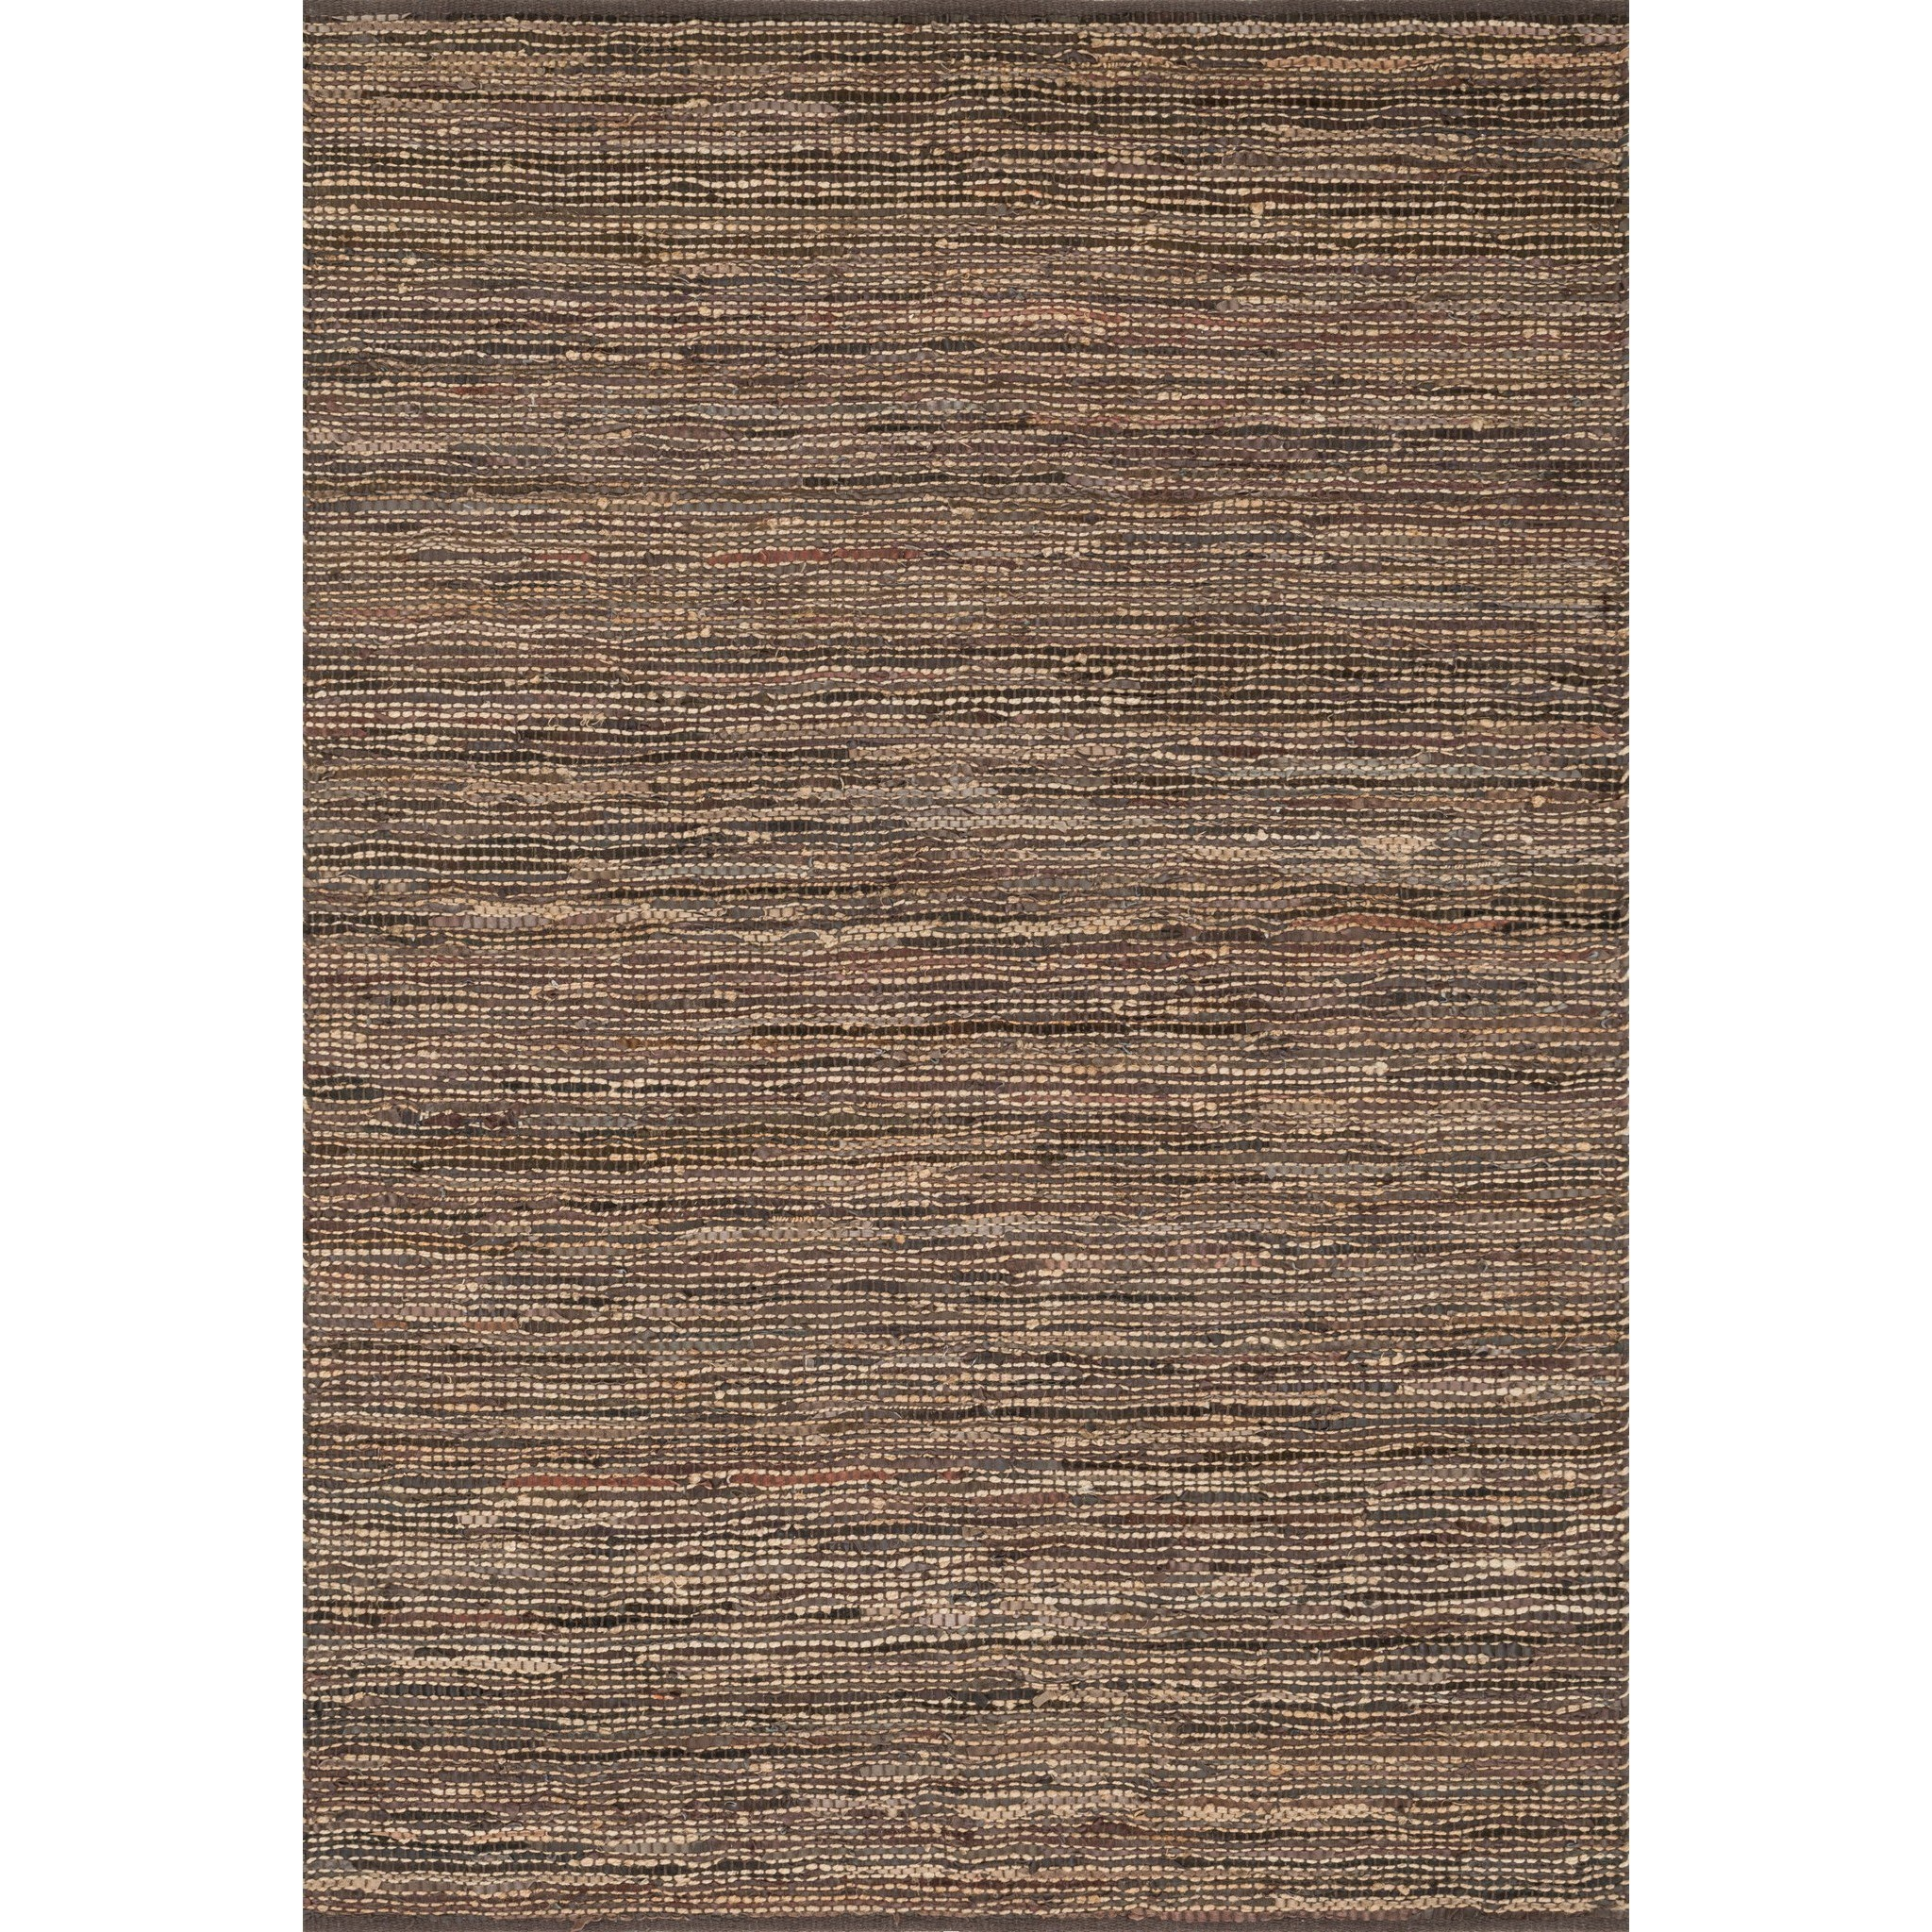 """Edge 5'-0"""" x 7'-6"""" Area Rug by Loloi Rugs at Virginia Furniture Market"""